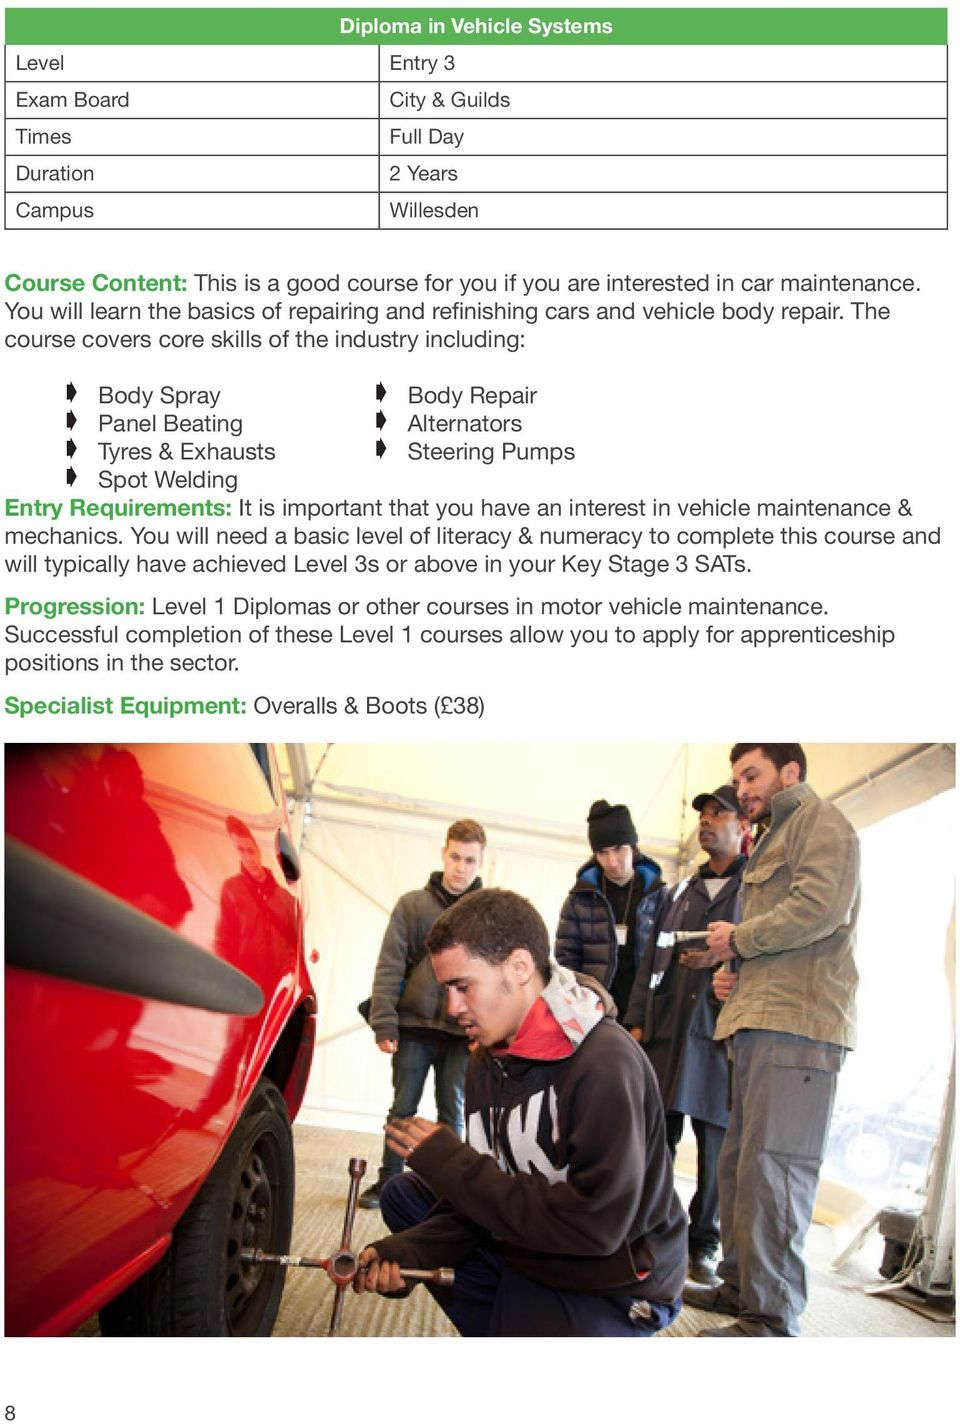 The course covers core skills of the industry including: Body Spray Body Repair Panel Beating Alternators Tyres & Exhausts Steering Pumps Spot Welding Entry Requirements: It is important that you